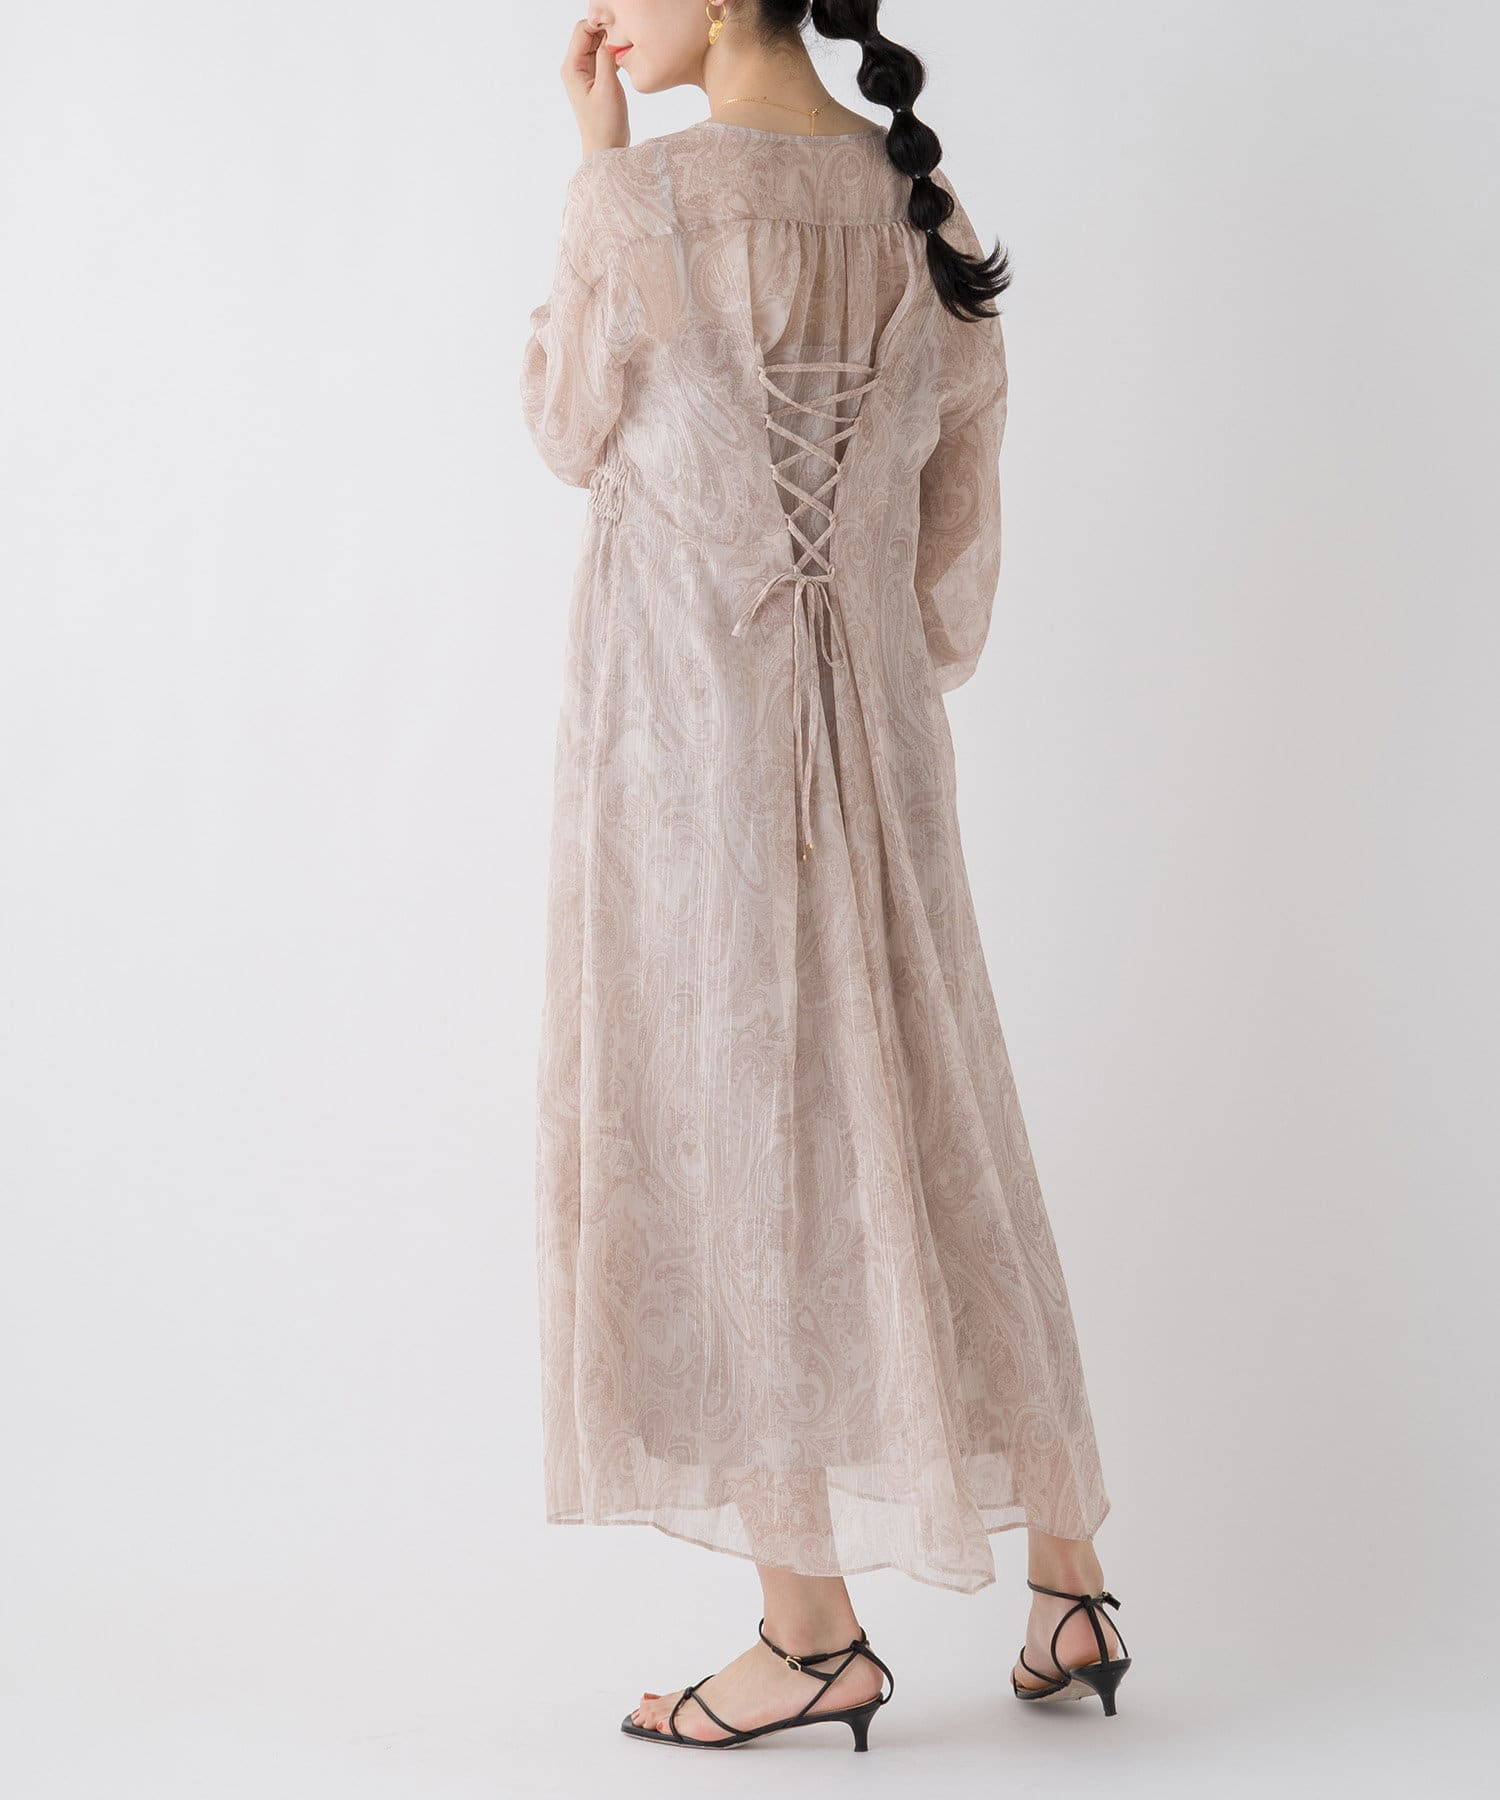 OUTLET(アウトレット) 【Loungedress】ペイズリープリントワンピース